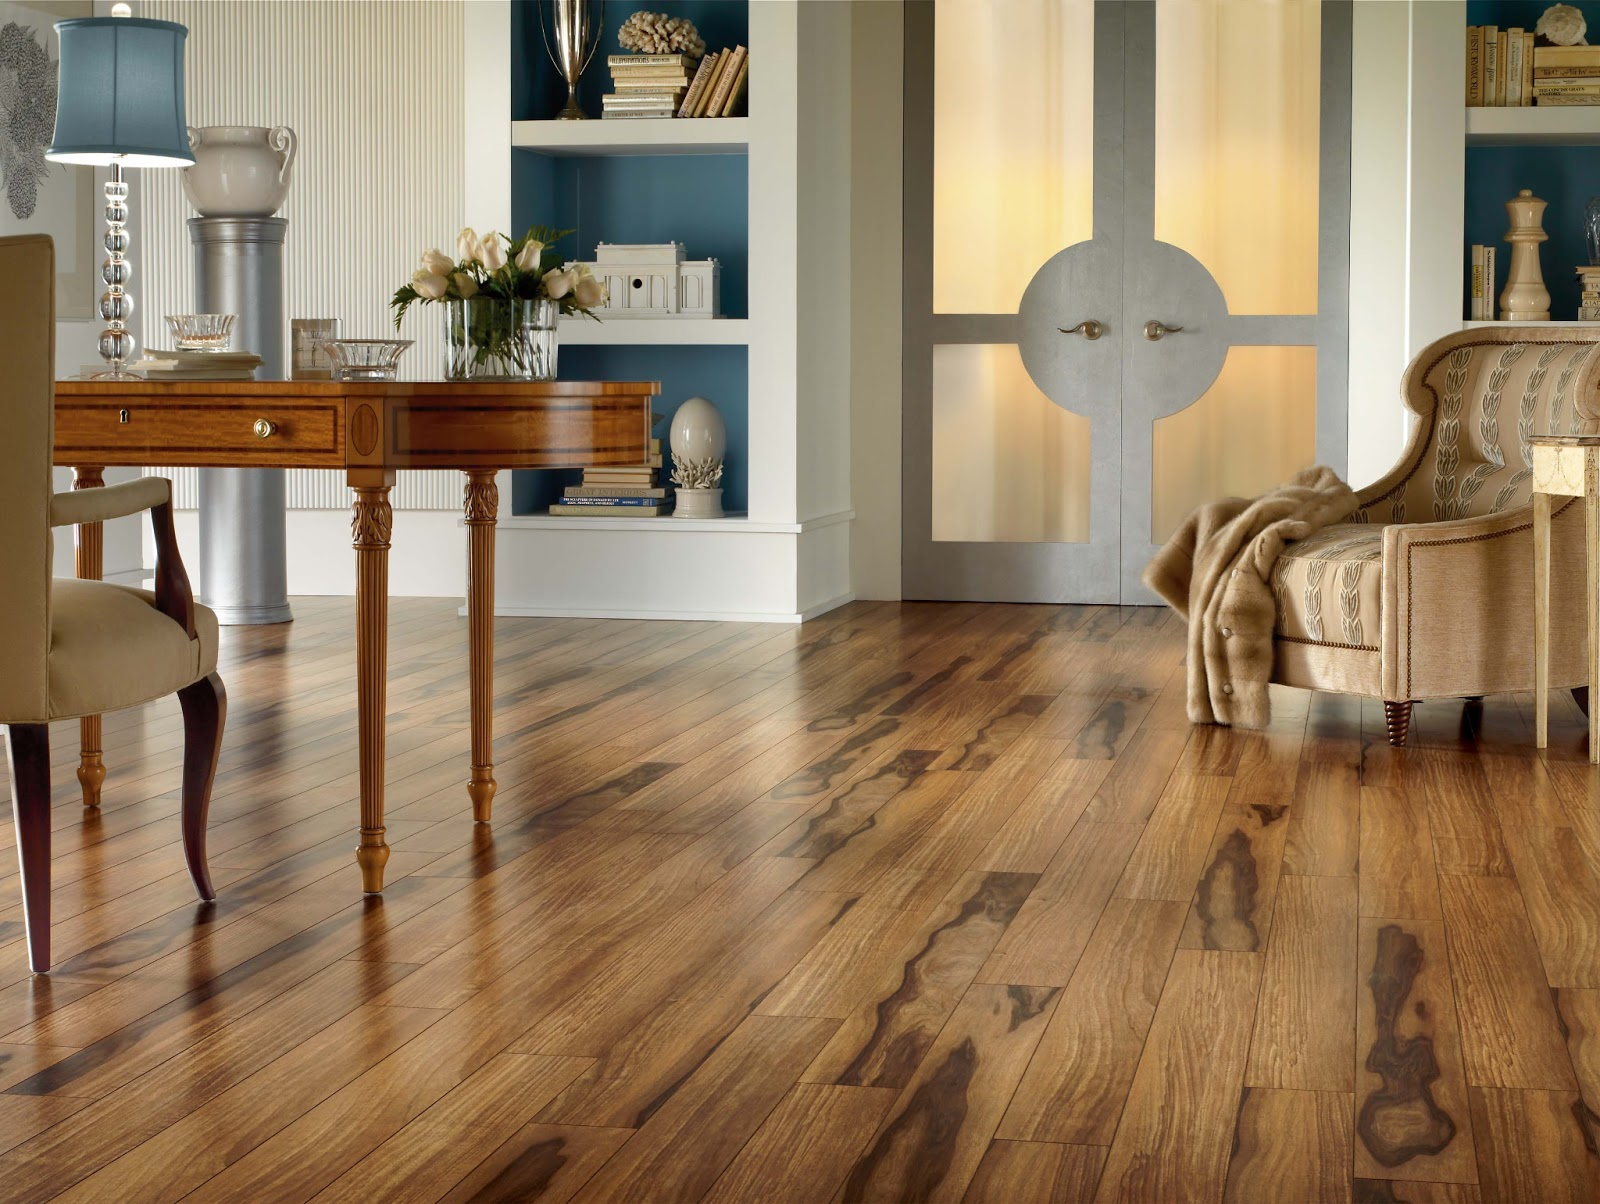 Durable Laminate Wood Flooring floor is the frequent place that can be easily damaged even without us KDFCIFY